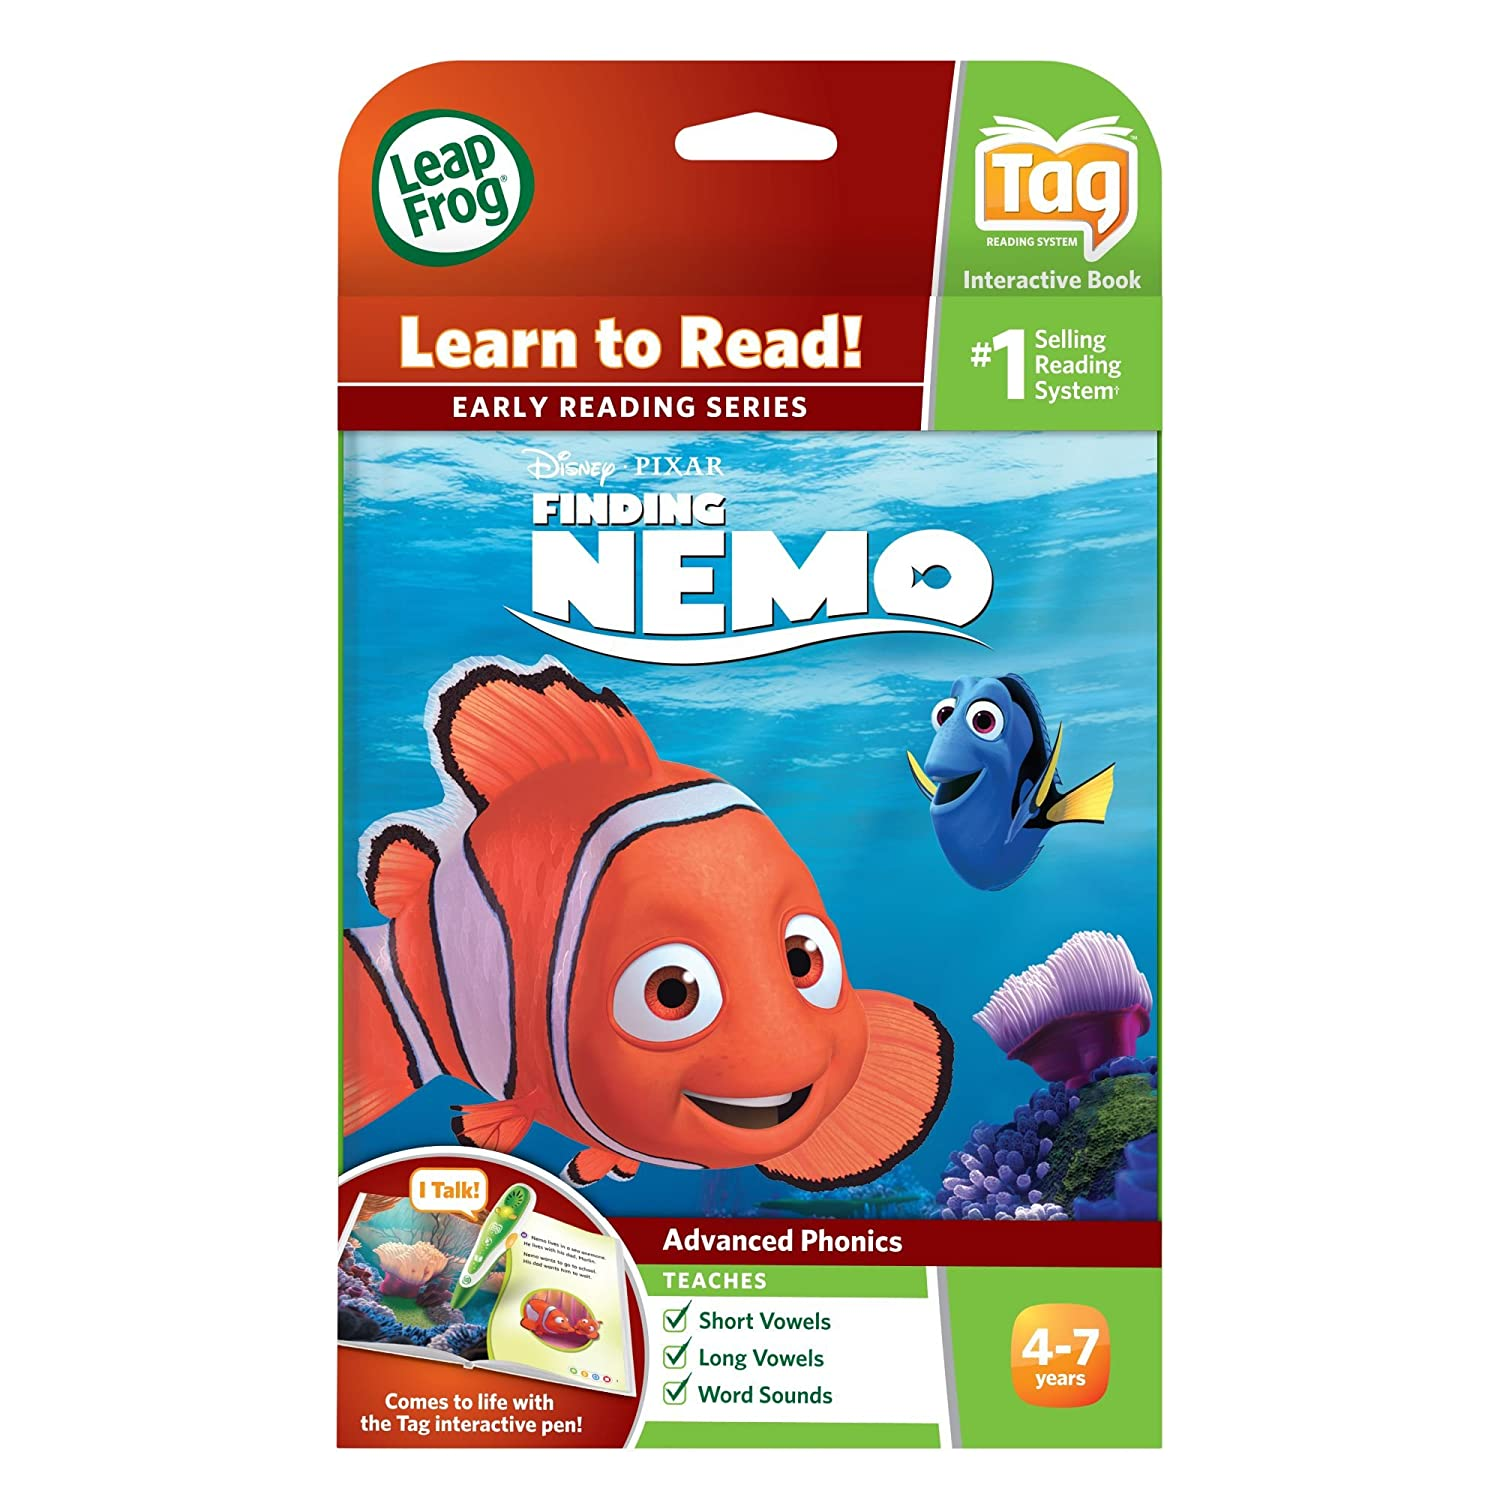 Leapfrog leapreader early reader book disney pixar finding nemo leapfrog leapreader early reader book disney pixar finding nemo lost and found works with tag amazon toys games gumiabroncs Gallery